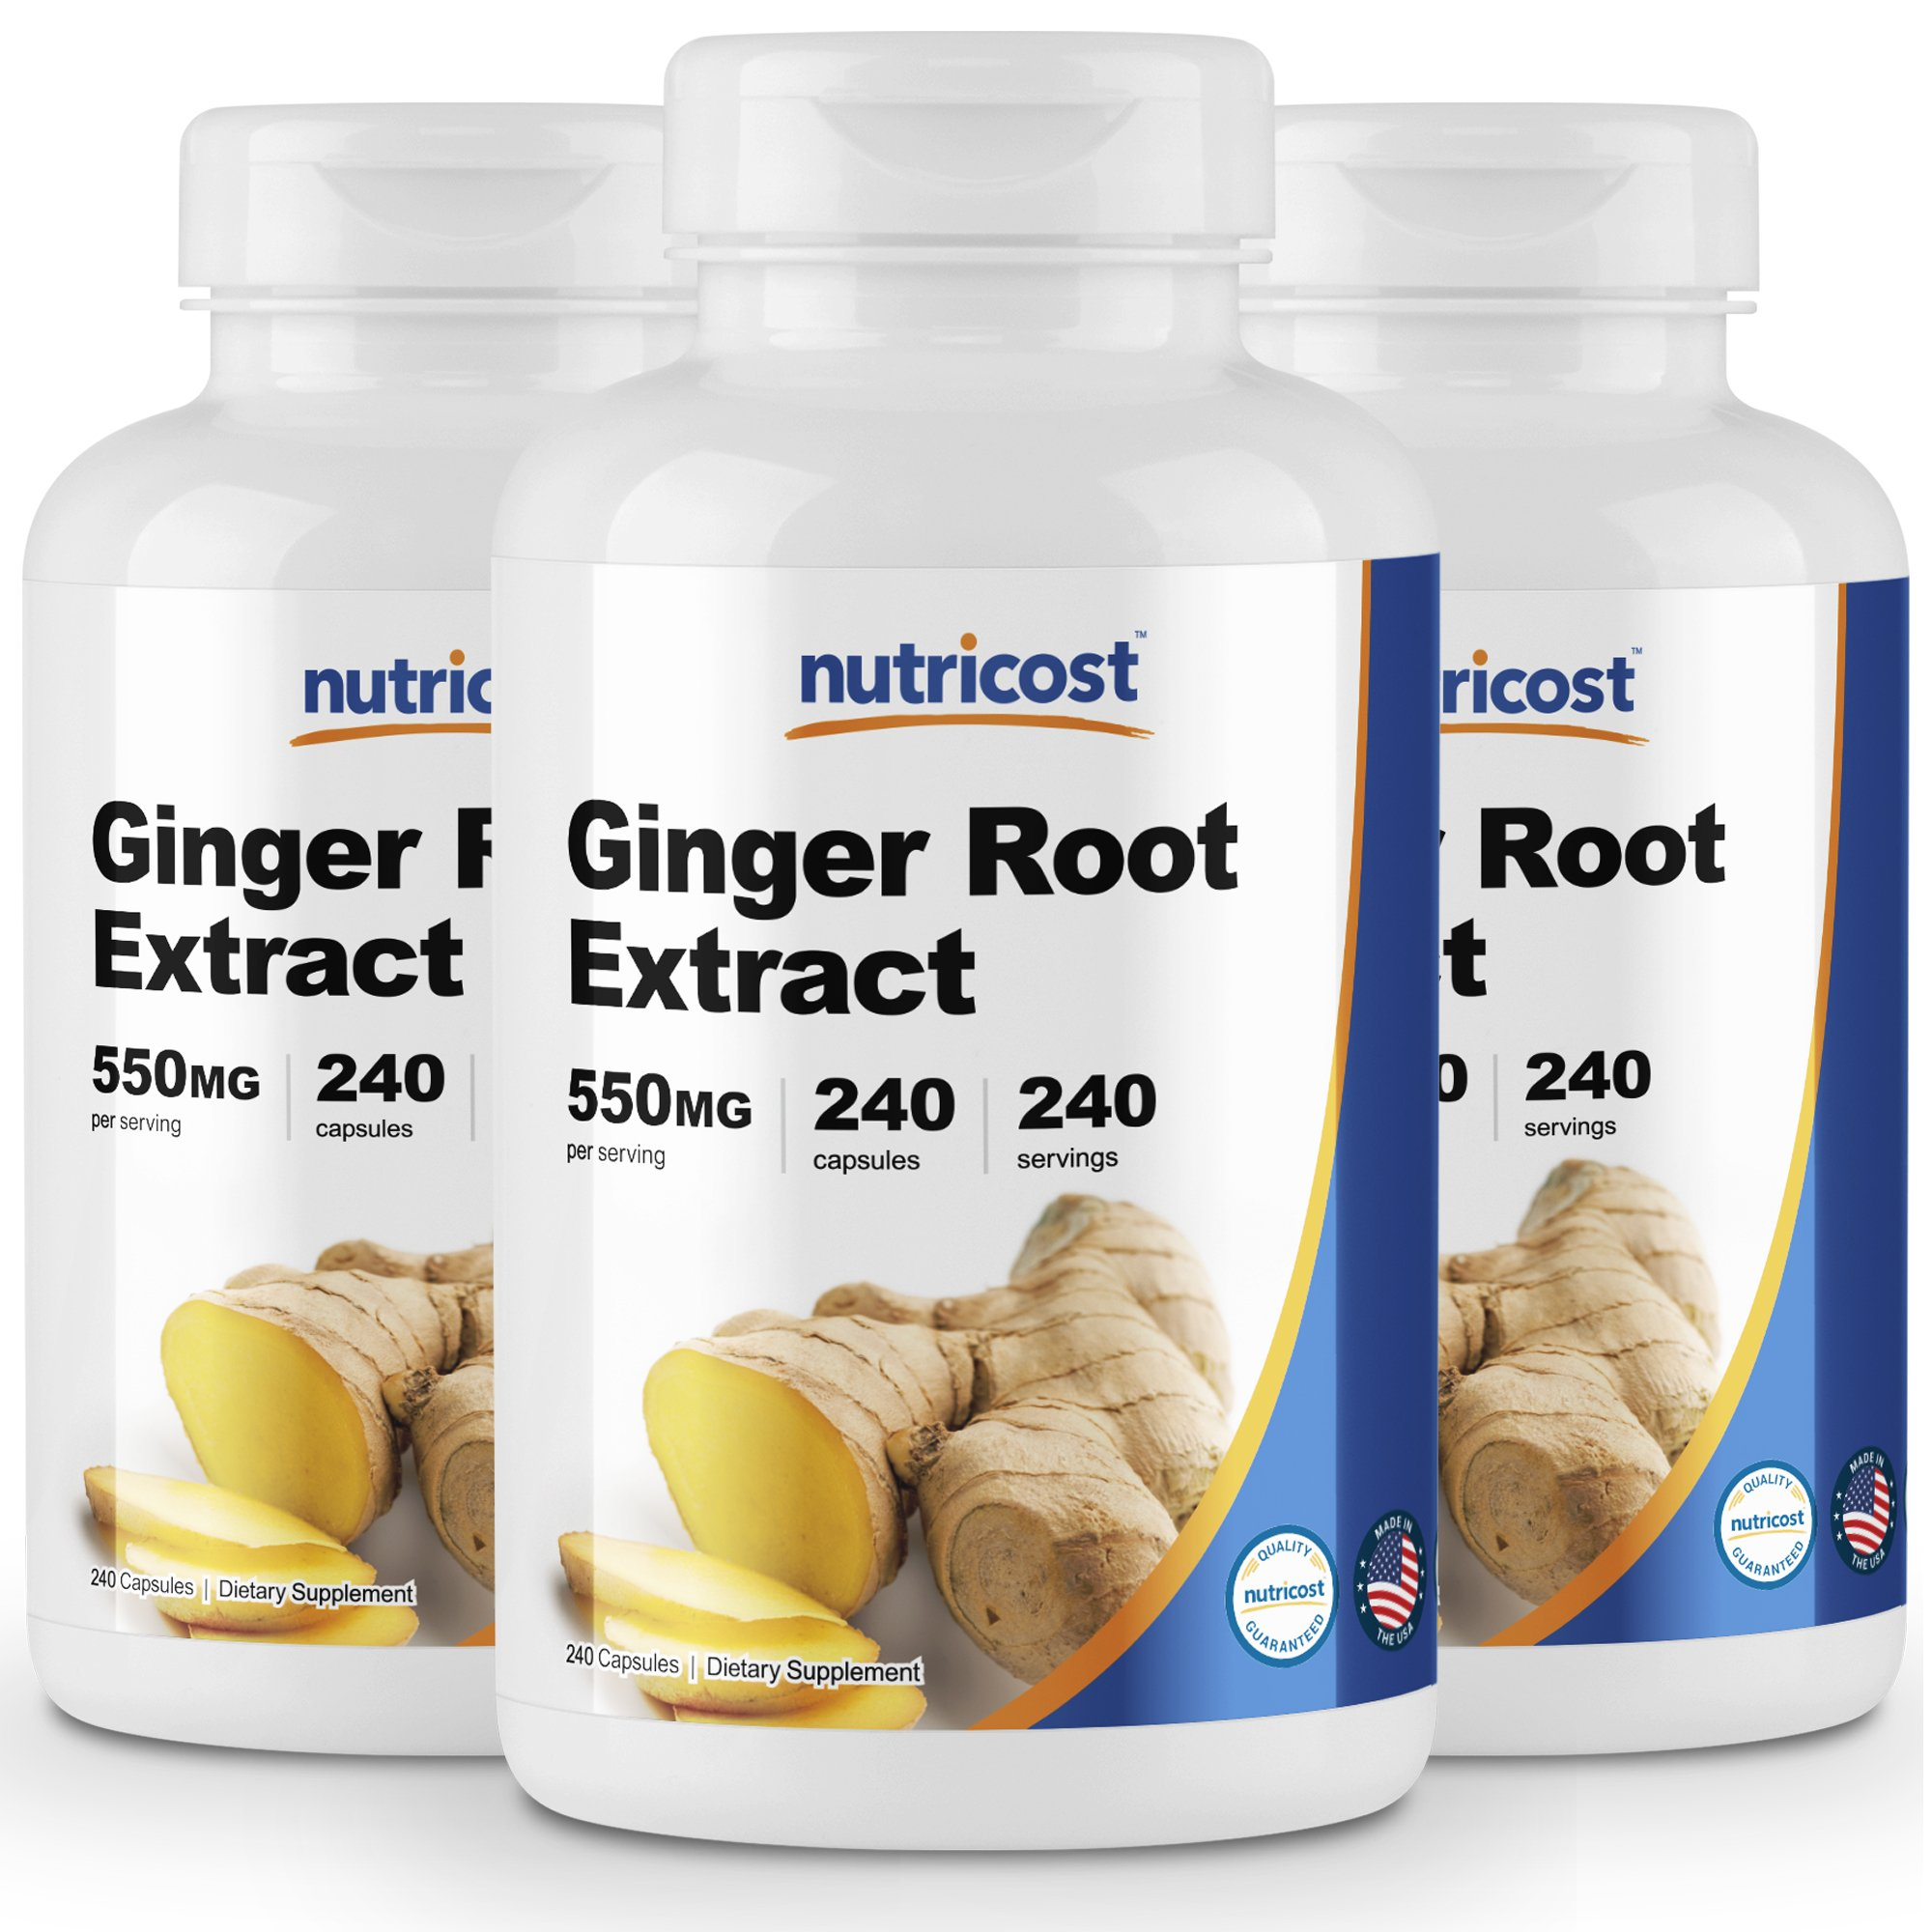 Nutricost Ginger Root Extract 550mg, 240 Capsules (3 Bottles)